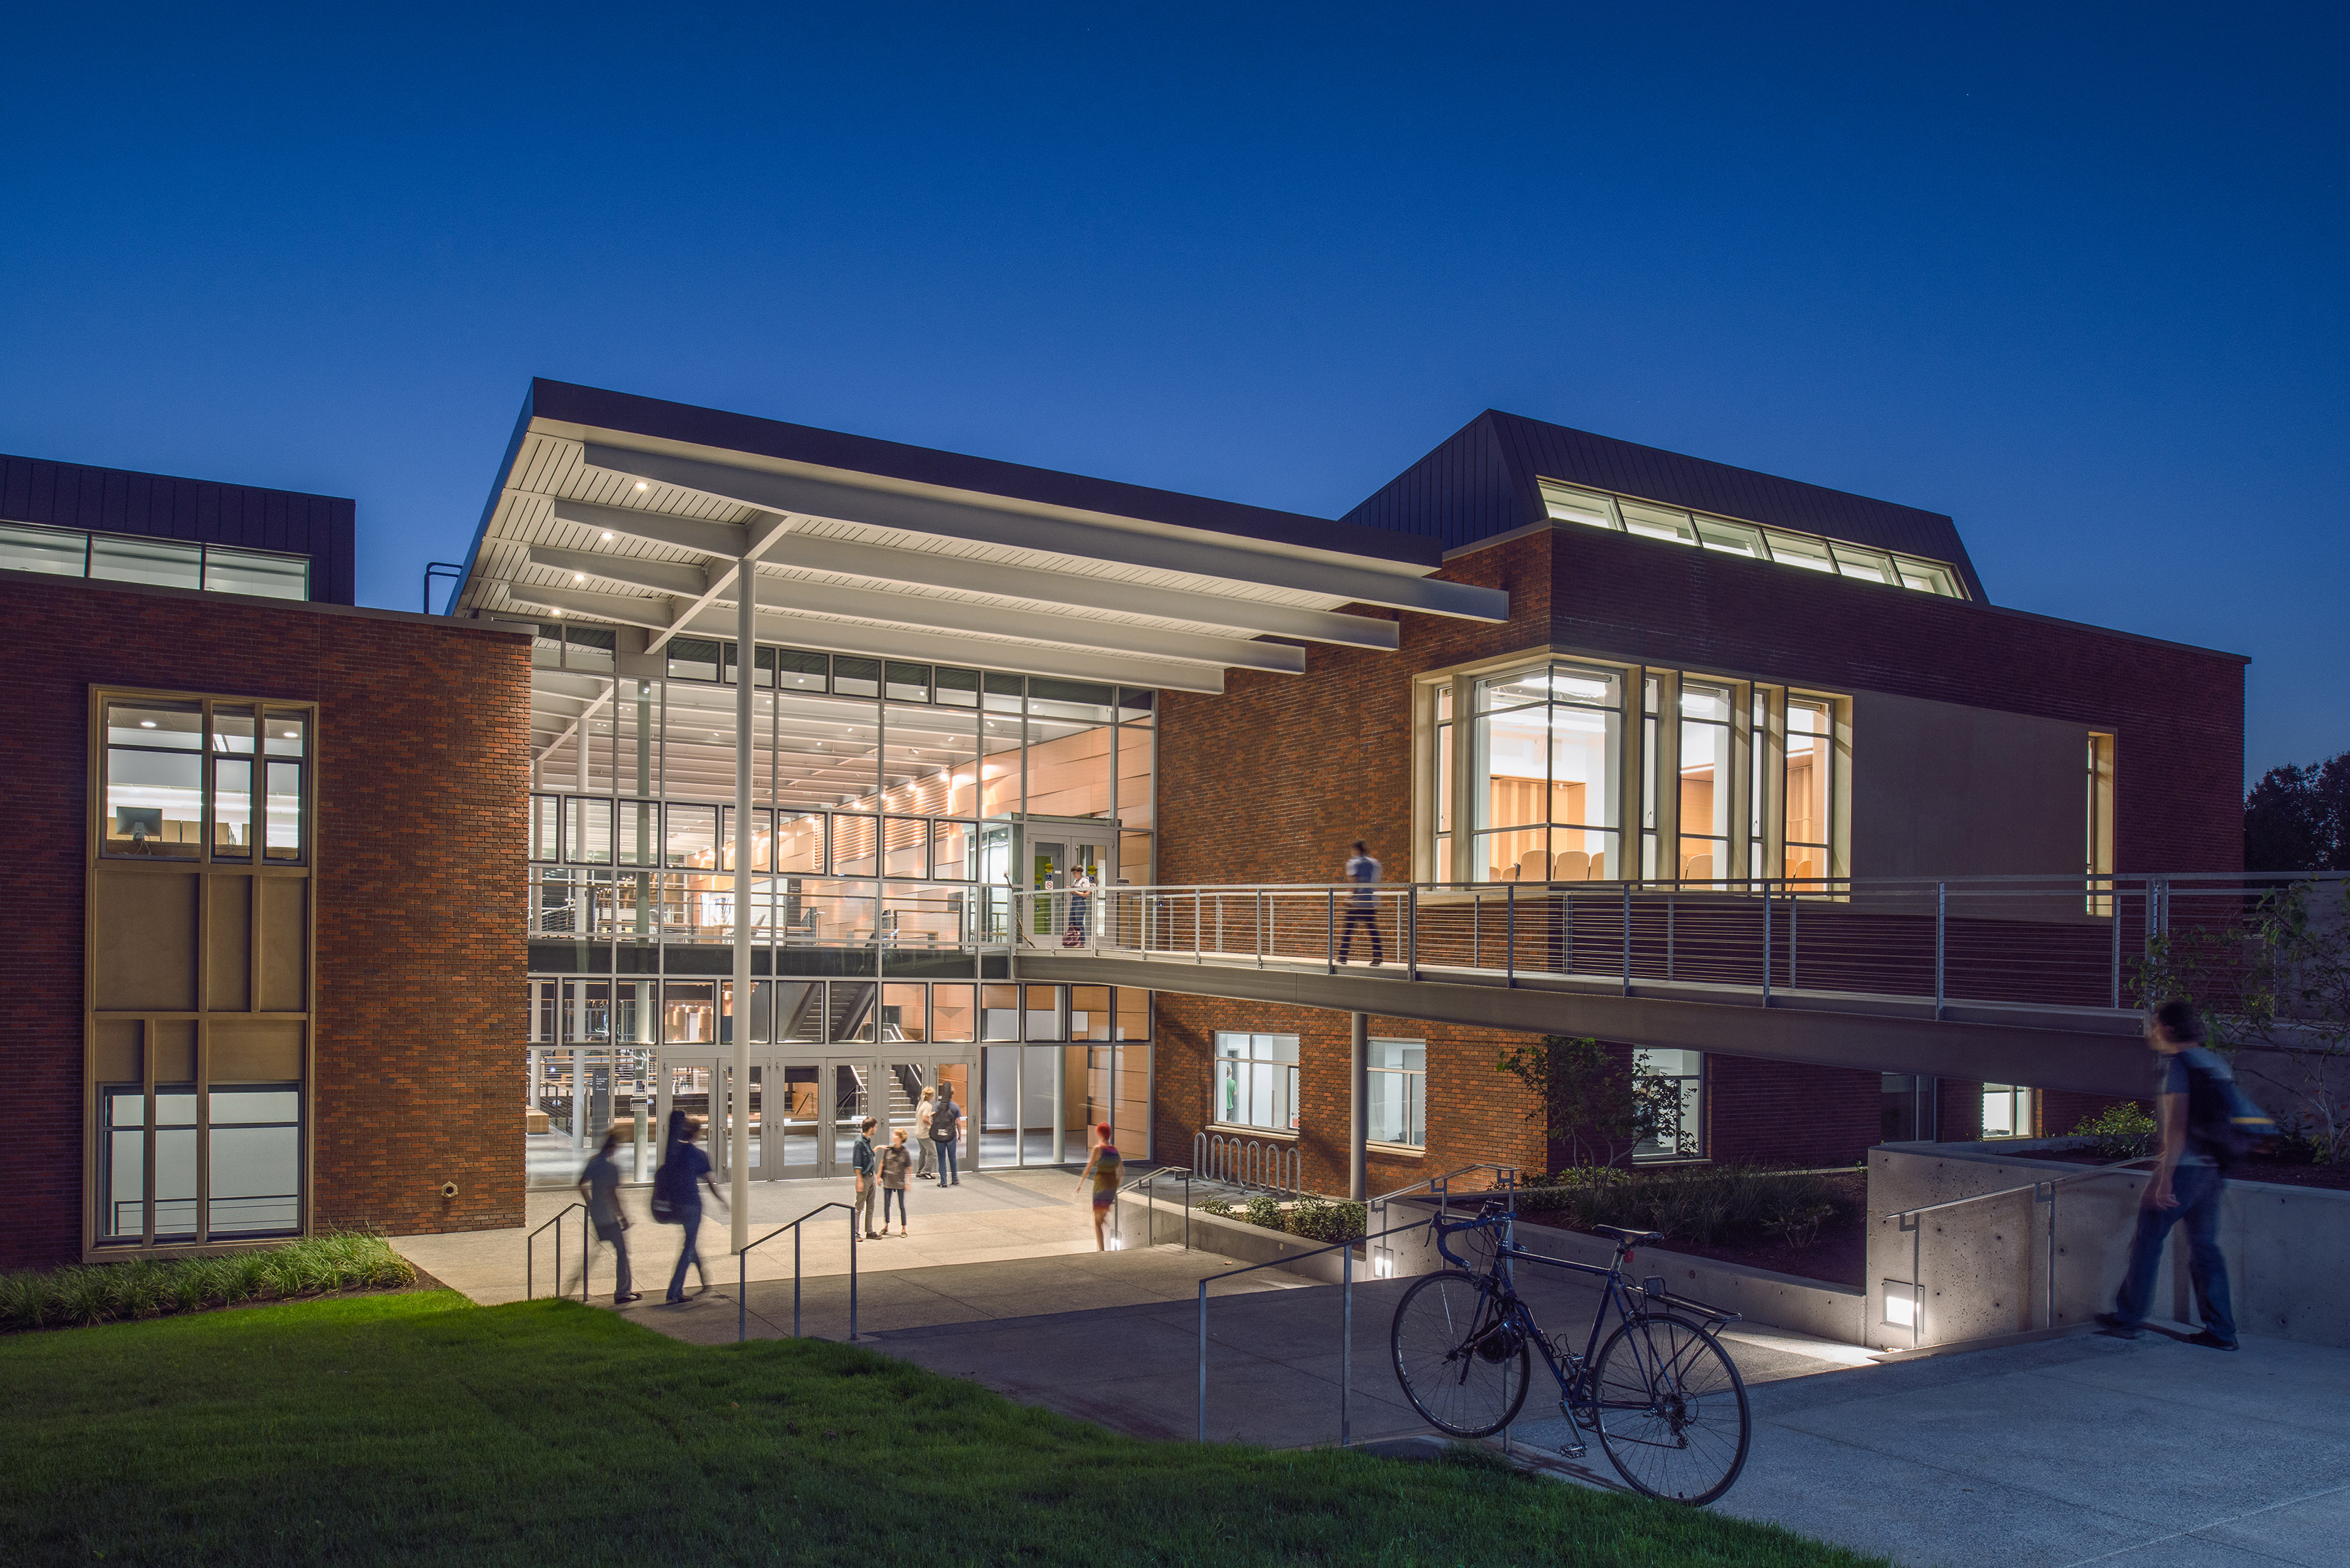 arts building performing architecture college oregon portland awards university architect projects facility library education center united states community reed theatre